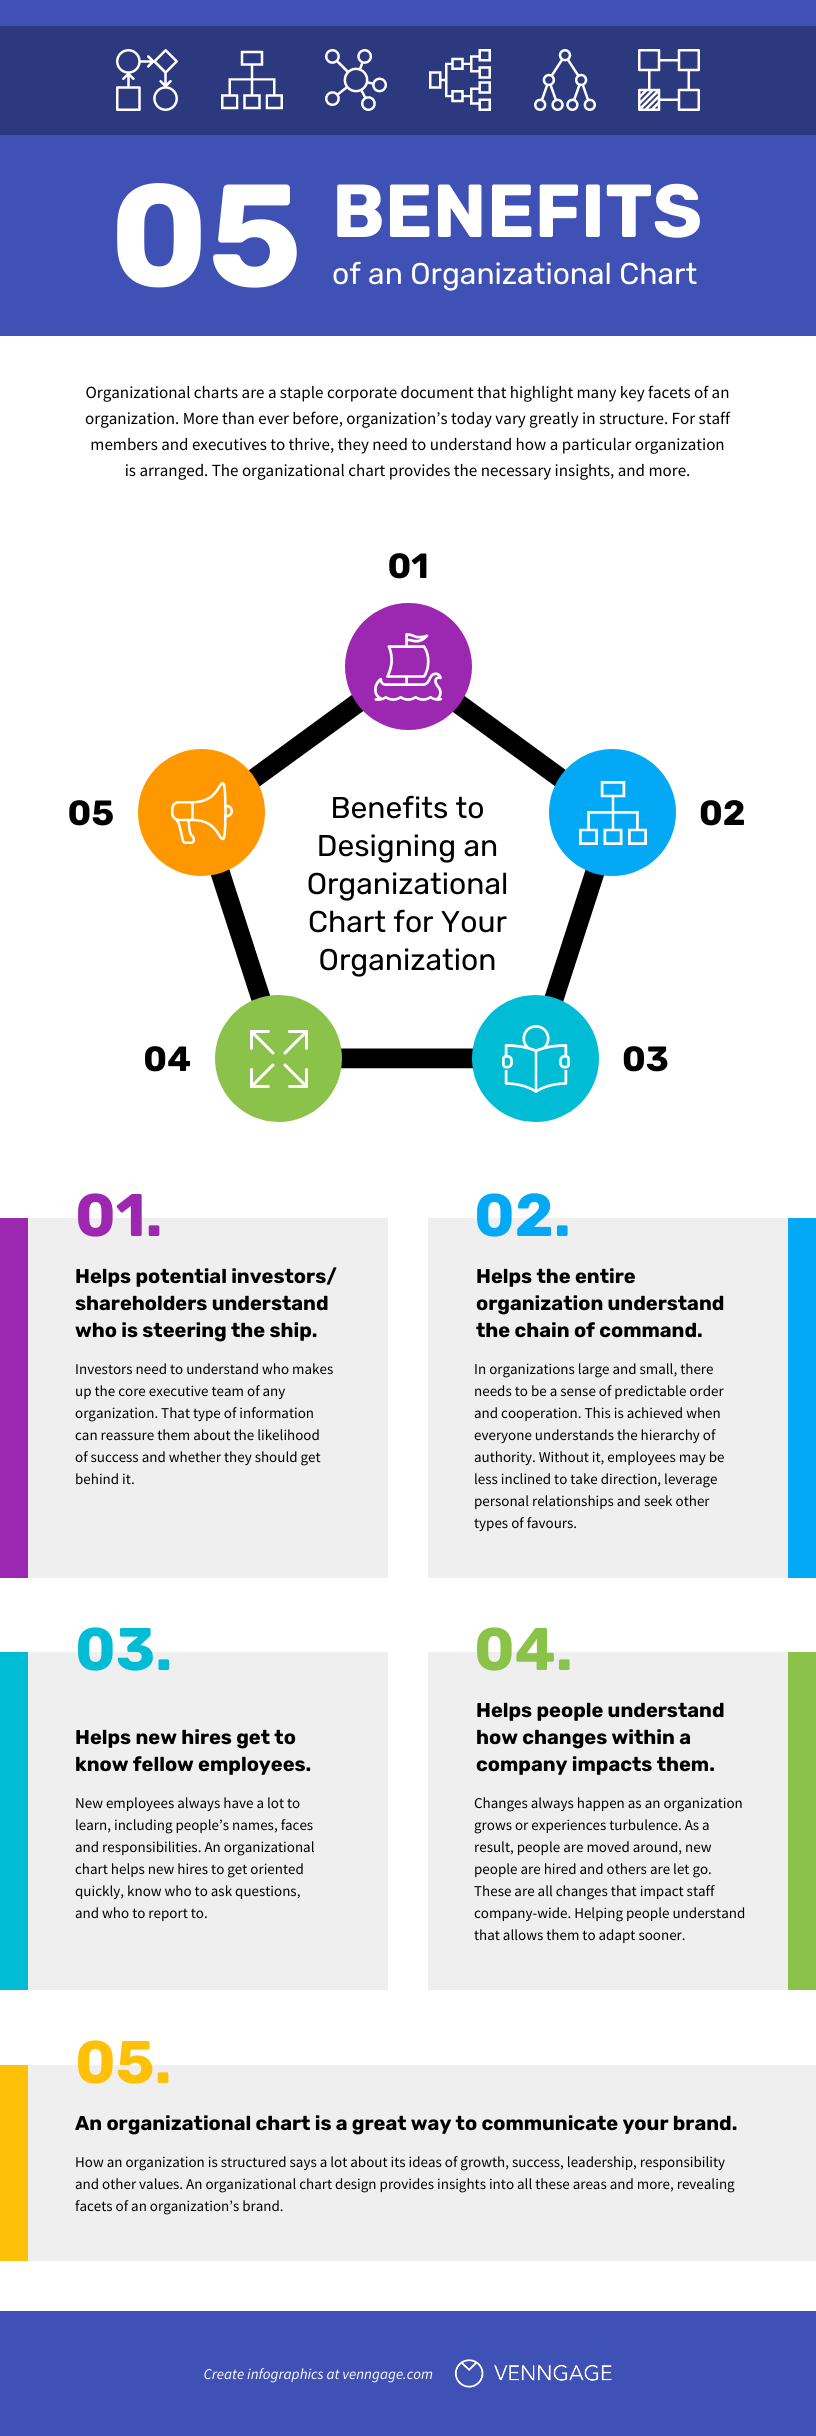 Product Infographic Template Org Chart Benefits List